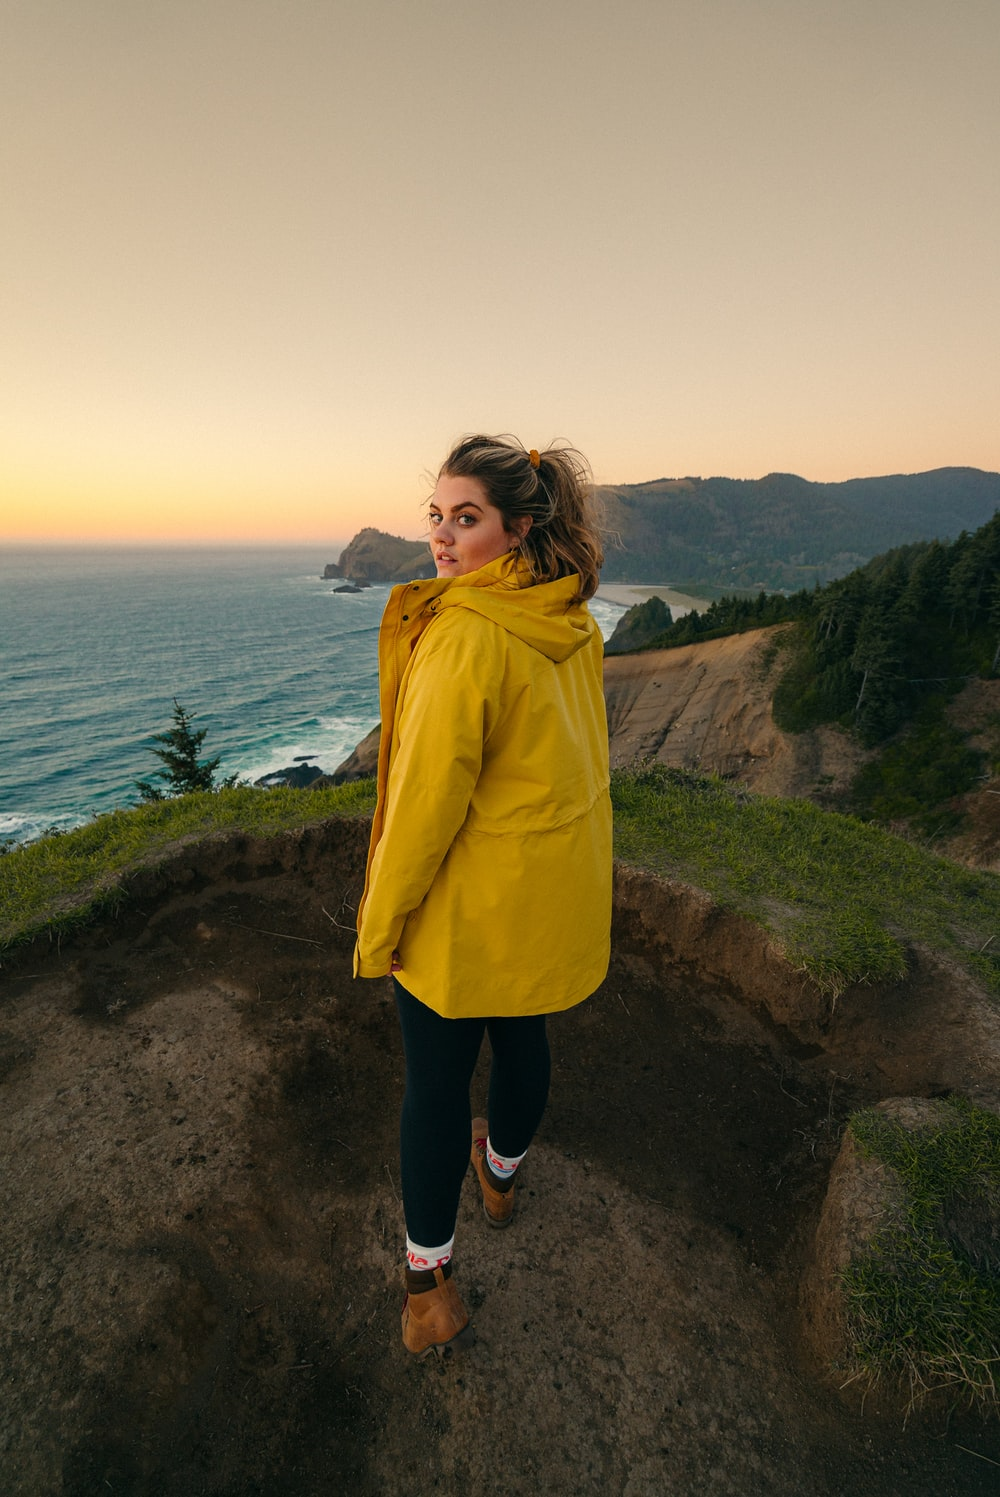 woman in yellow coat standing on brown dirt road near body of water during daytime